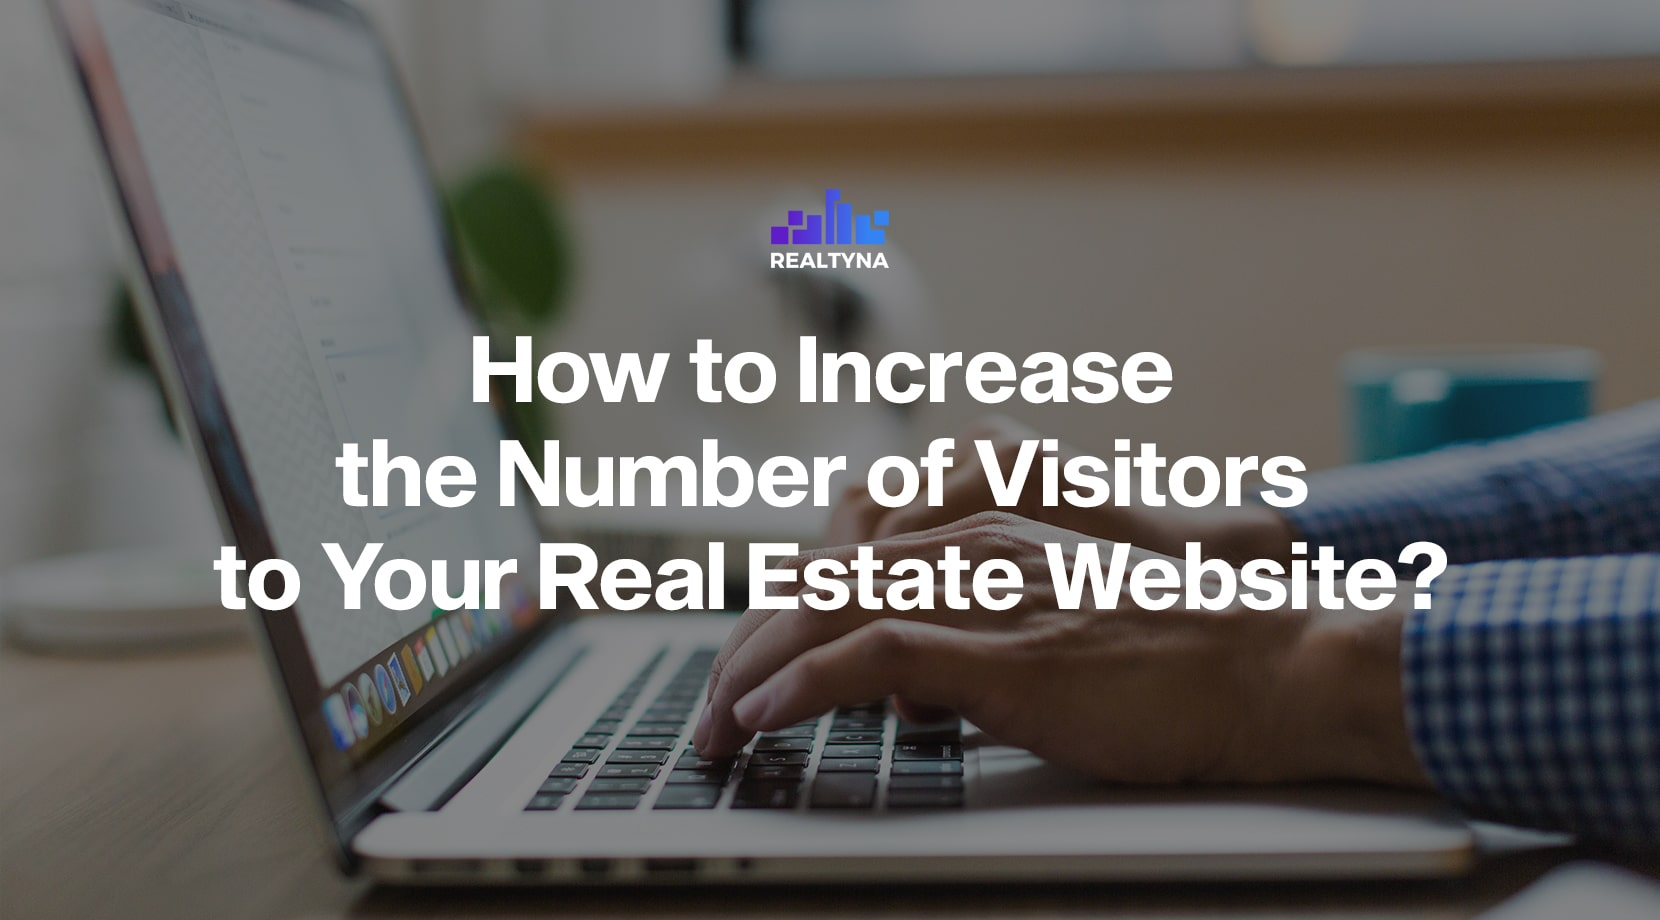 How to Increase the Number of Visitors to Your Real Estate Website?